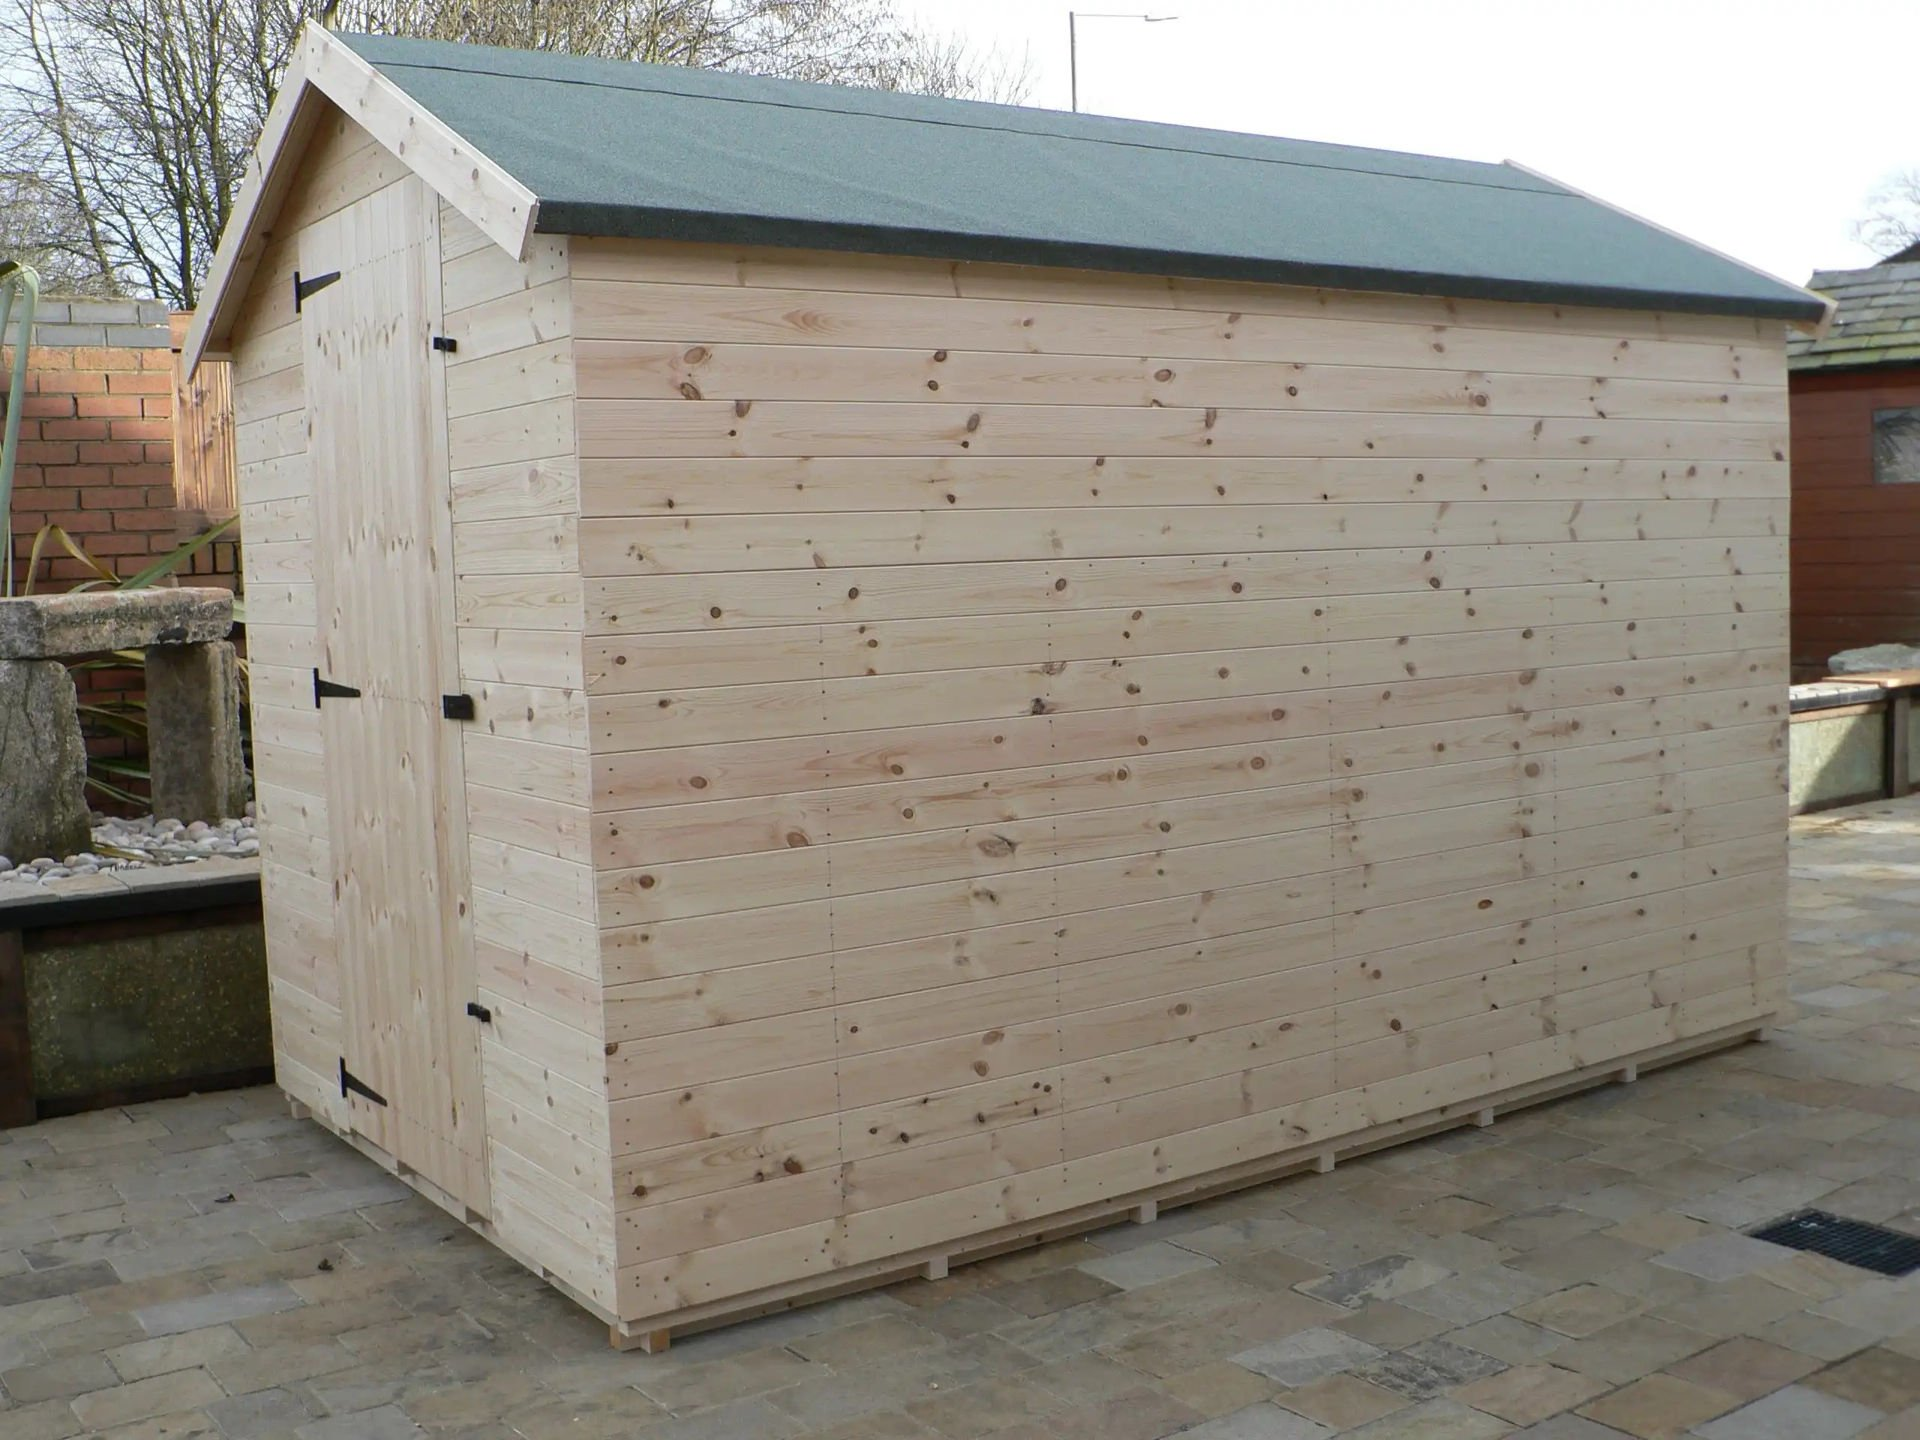 Sheds Manchester - 10' x 6' Apex Shed With No Windows And The Door Hinged On The Left